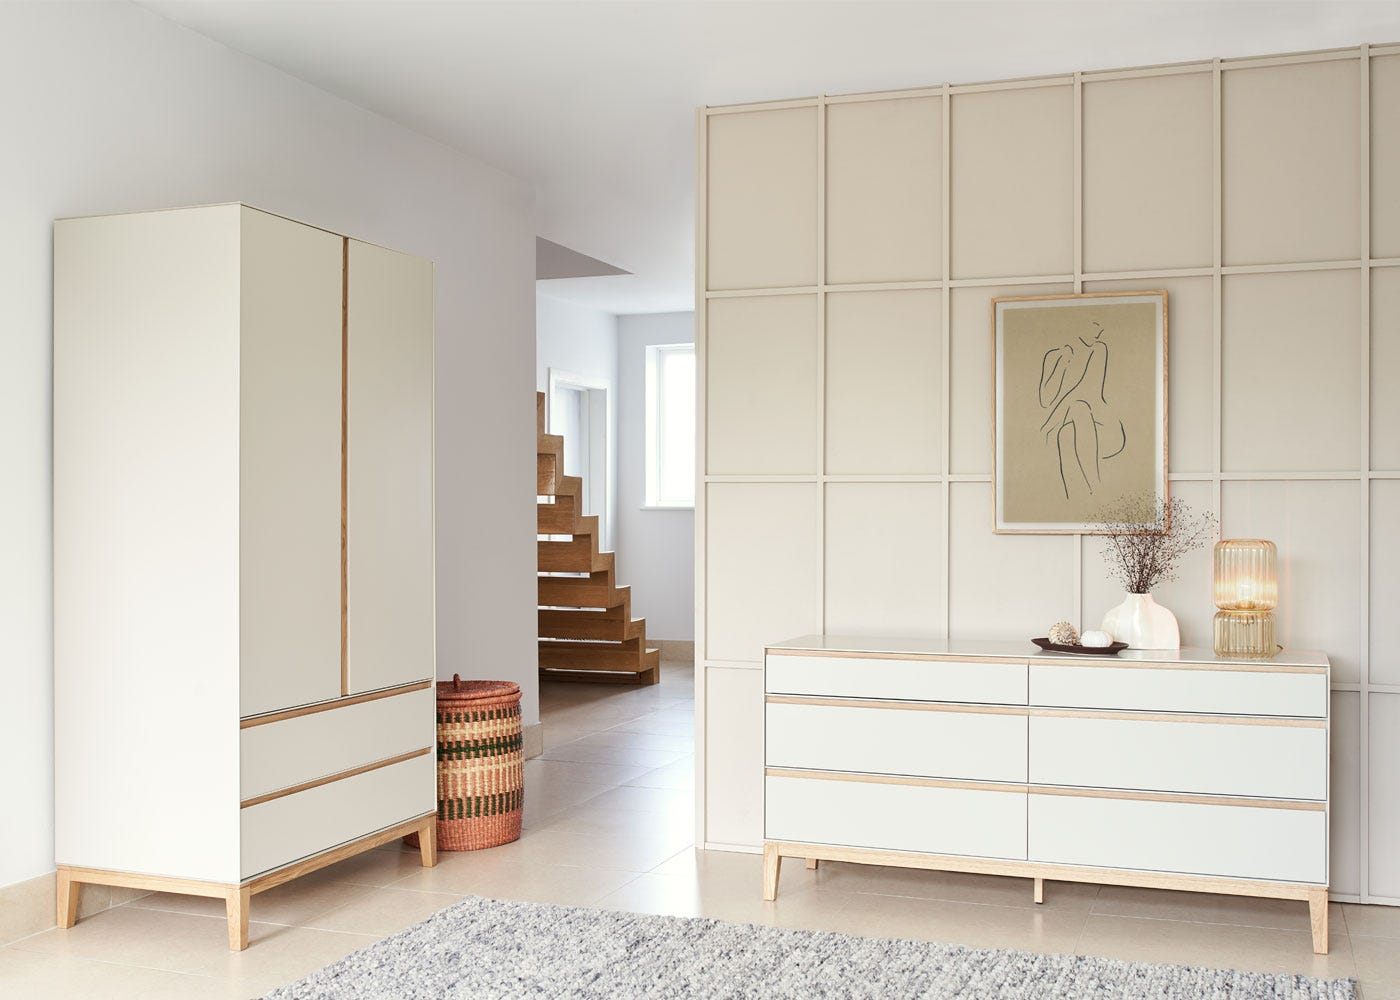 As shown: Lars wardrobe cashmere, Lars 6 Drawer chest cashmere.